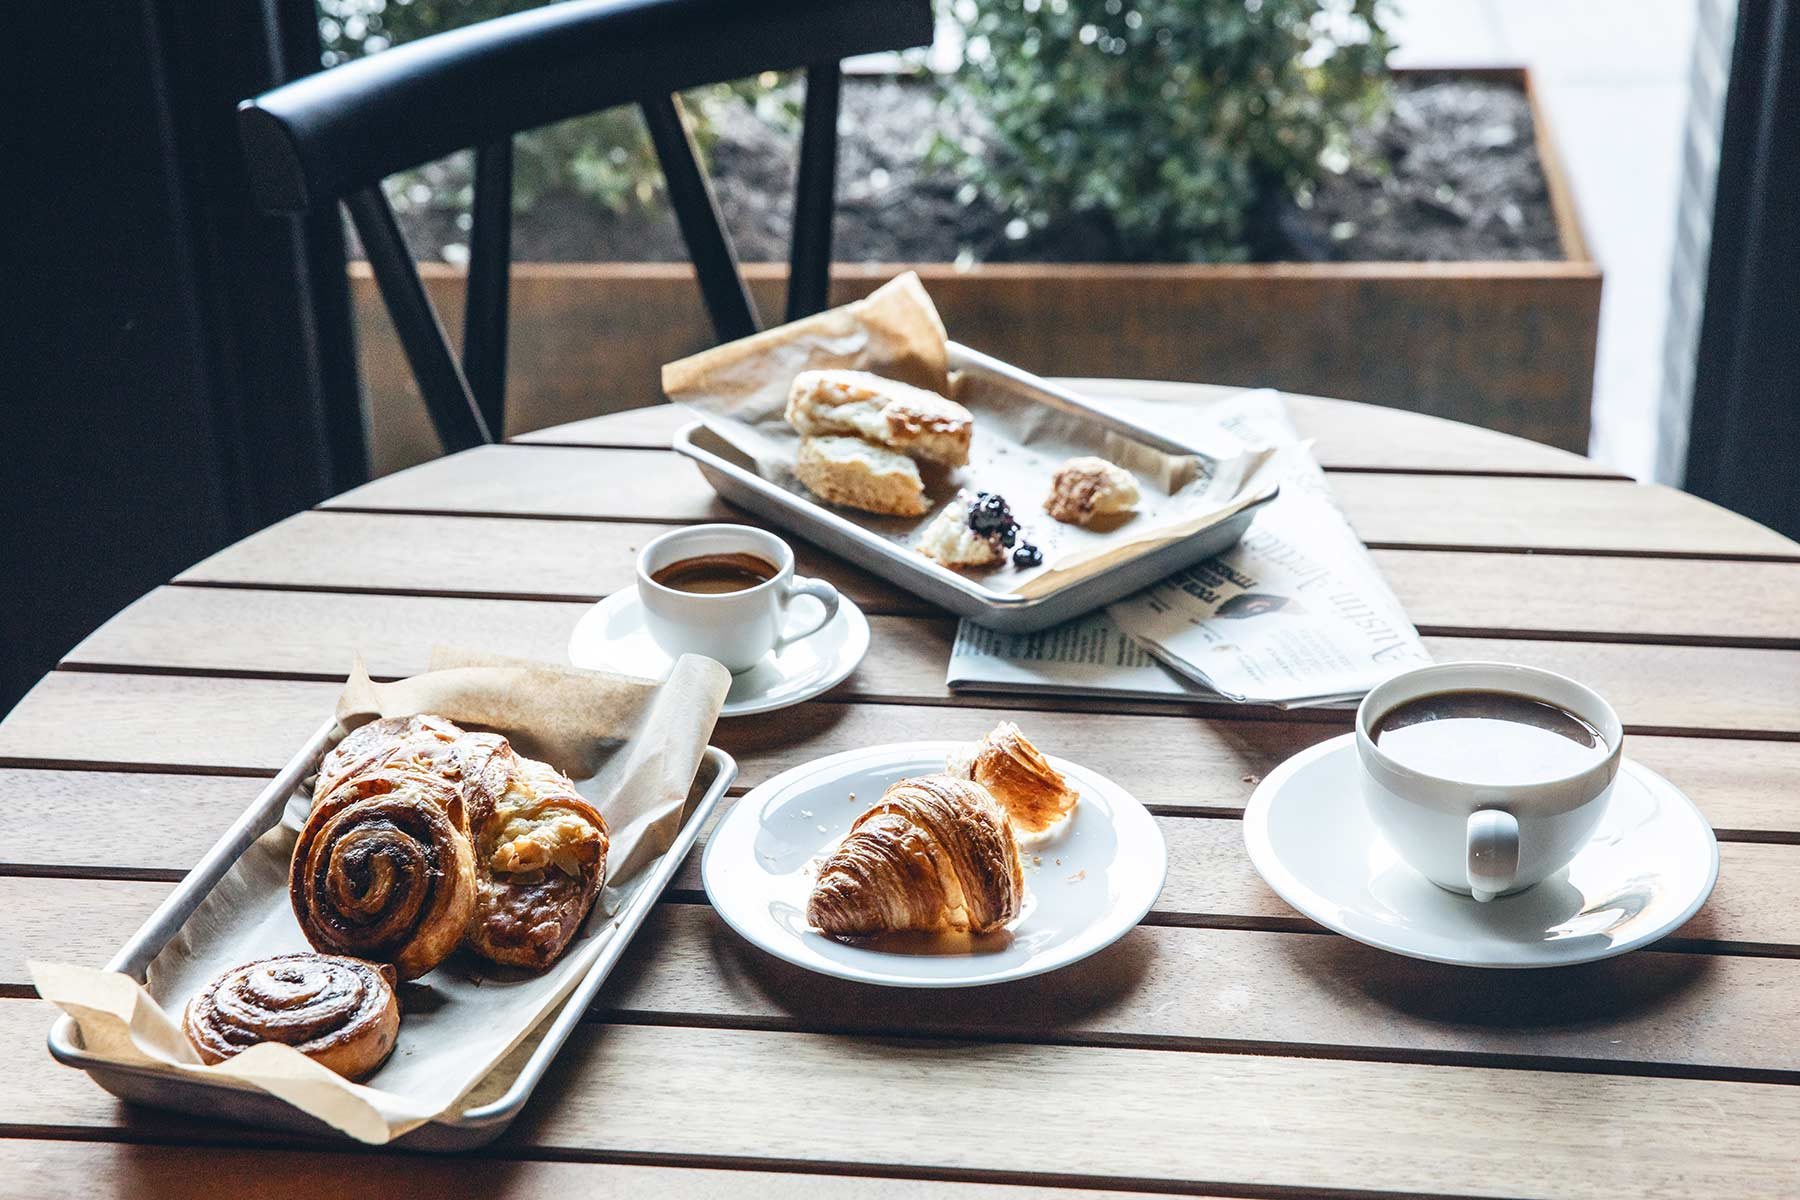 Assorted Breakfast Pastries and Coffee